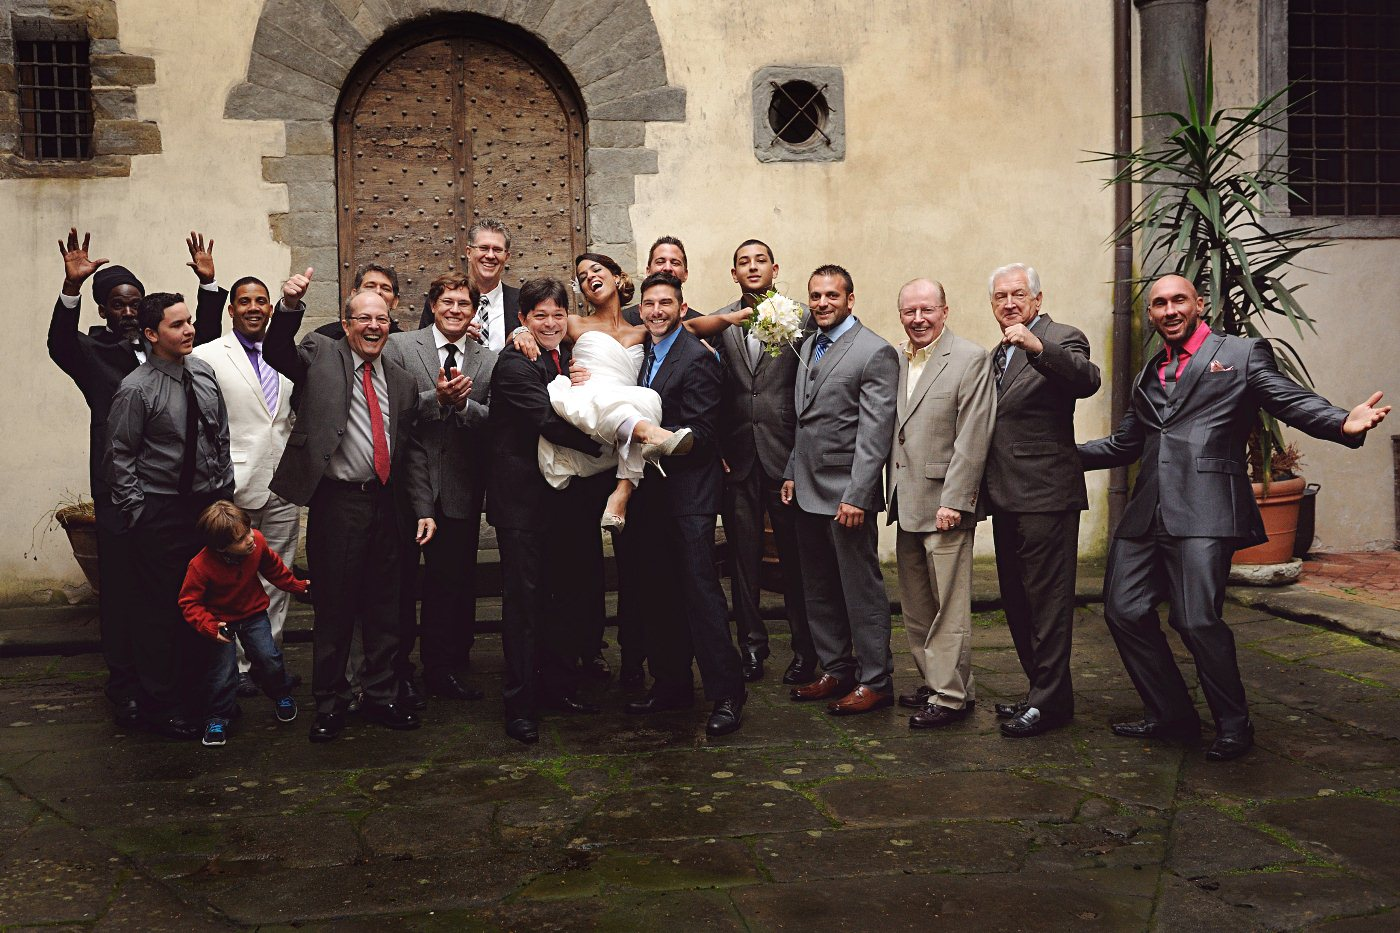 wedding photos castello del trebbio_14.jpg